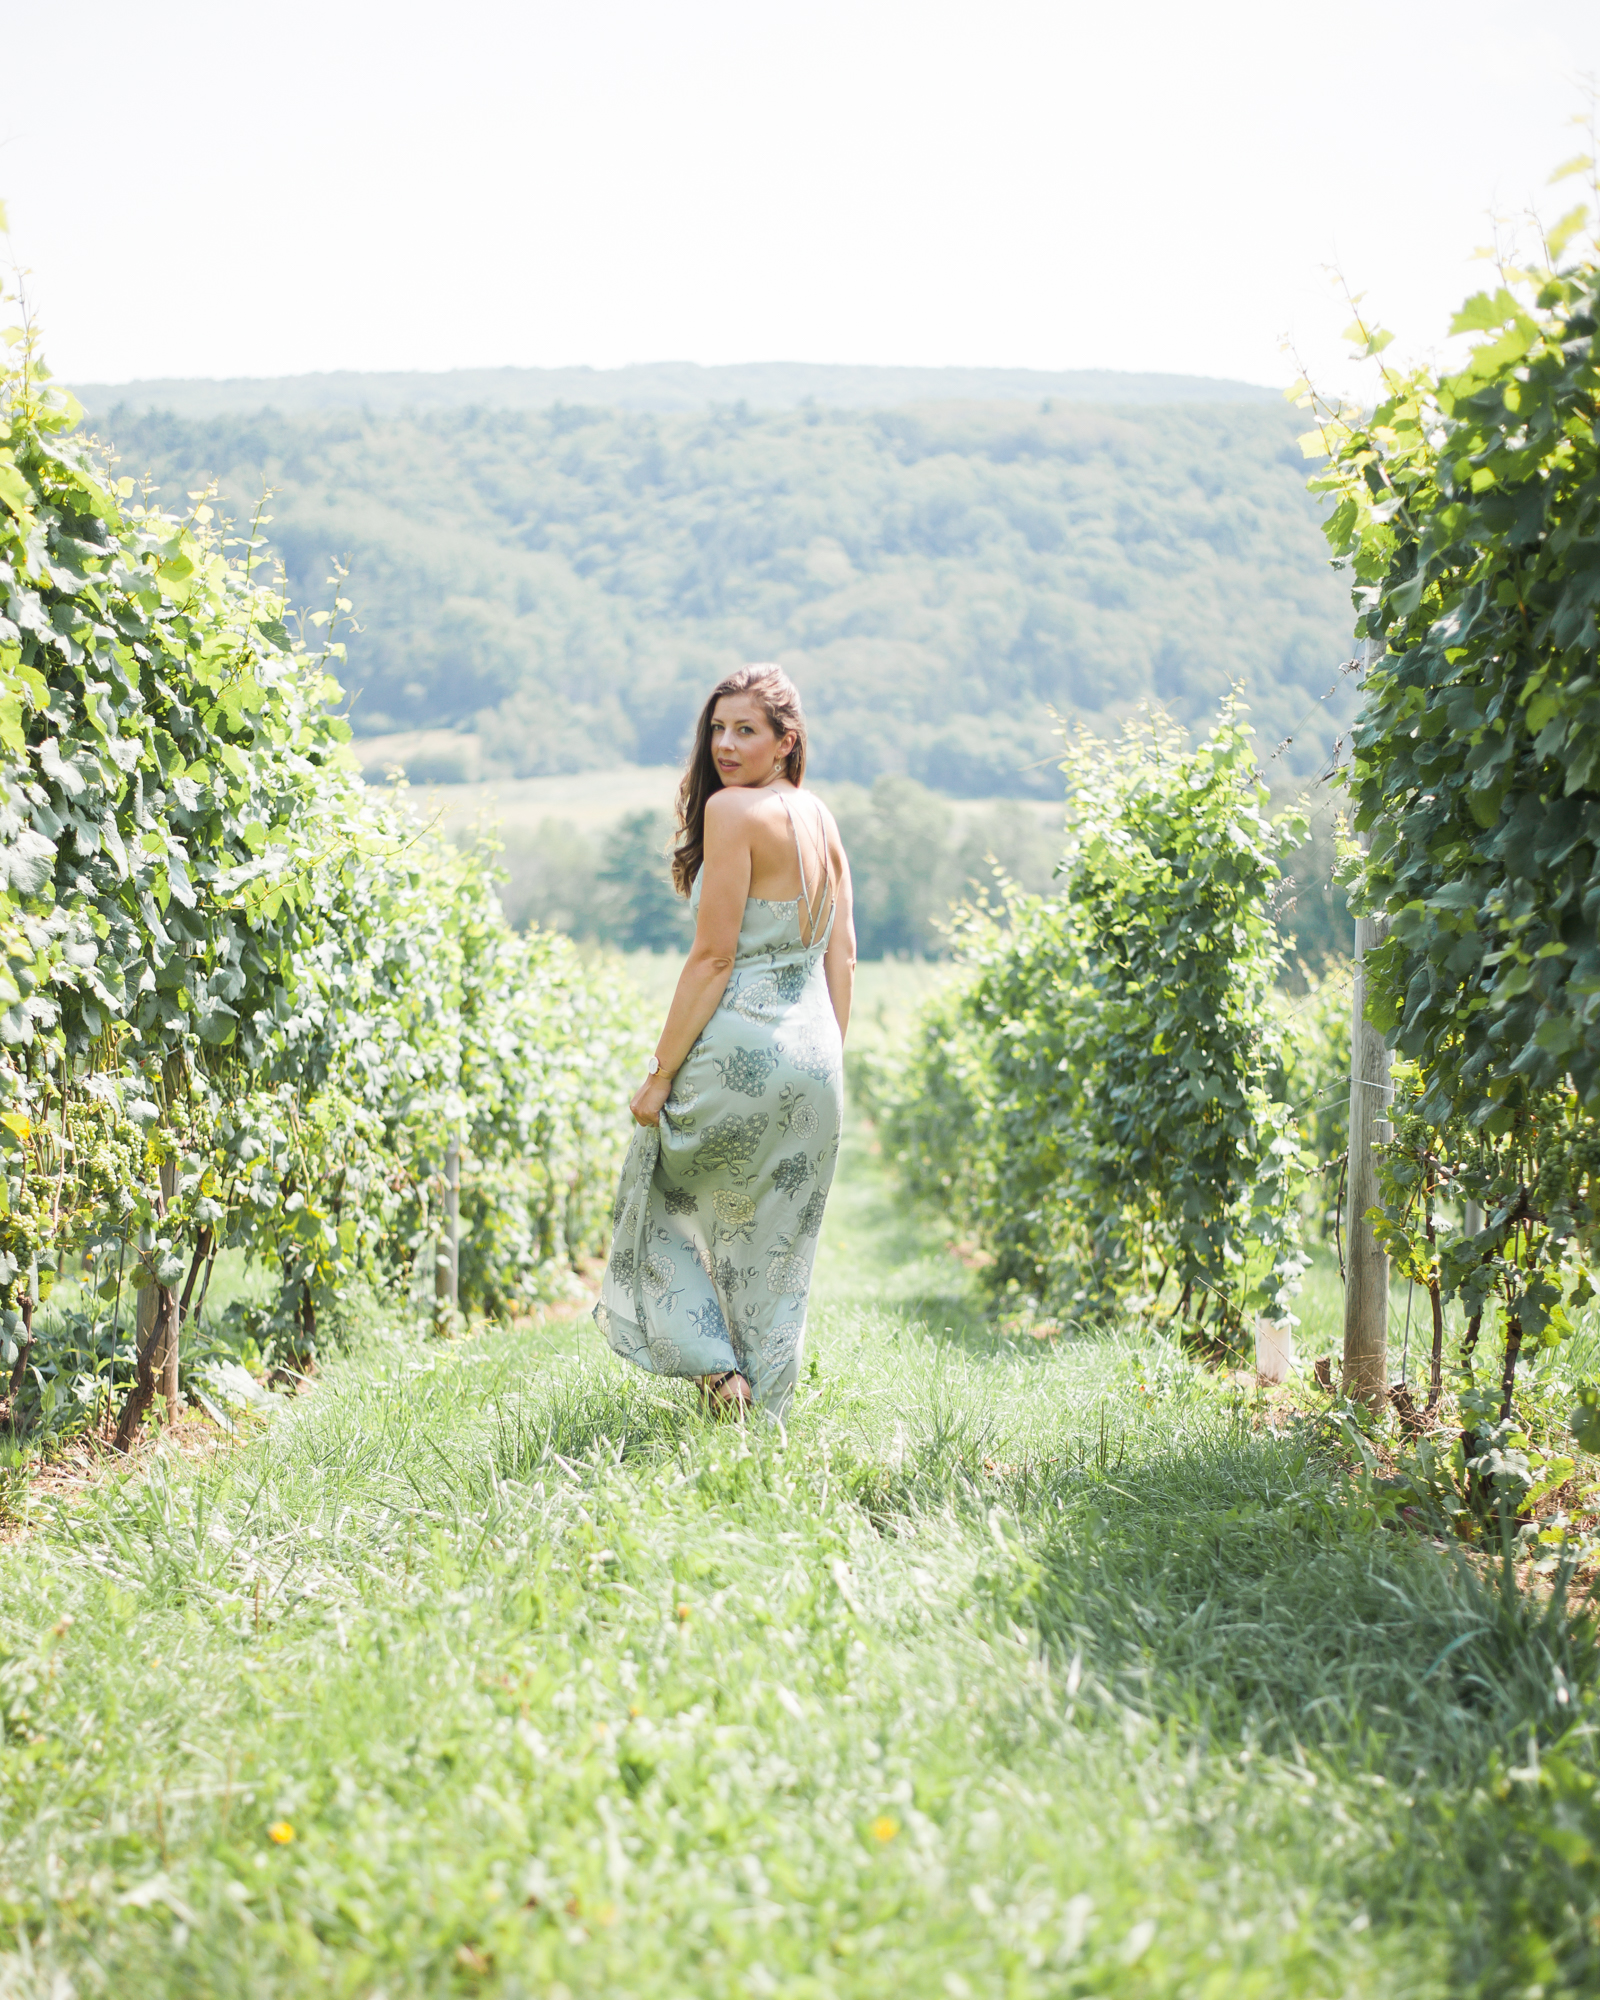 Wild Rosebuds: Summer Road Trip To Annapolis Valley Wineries